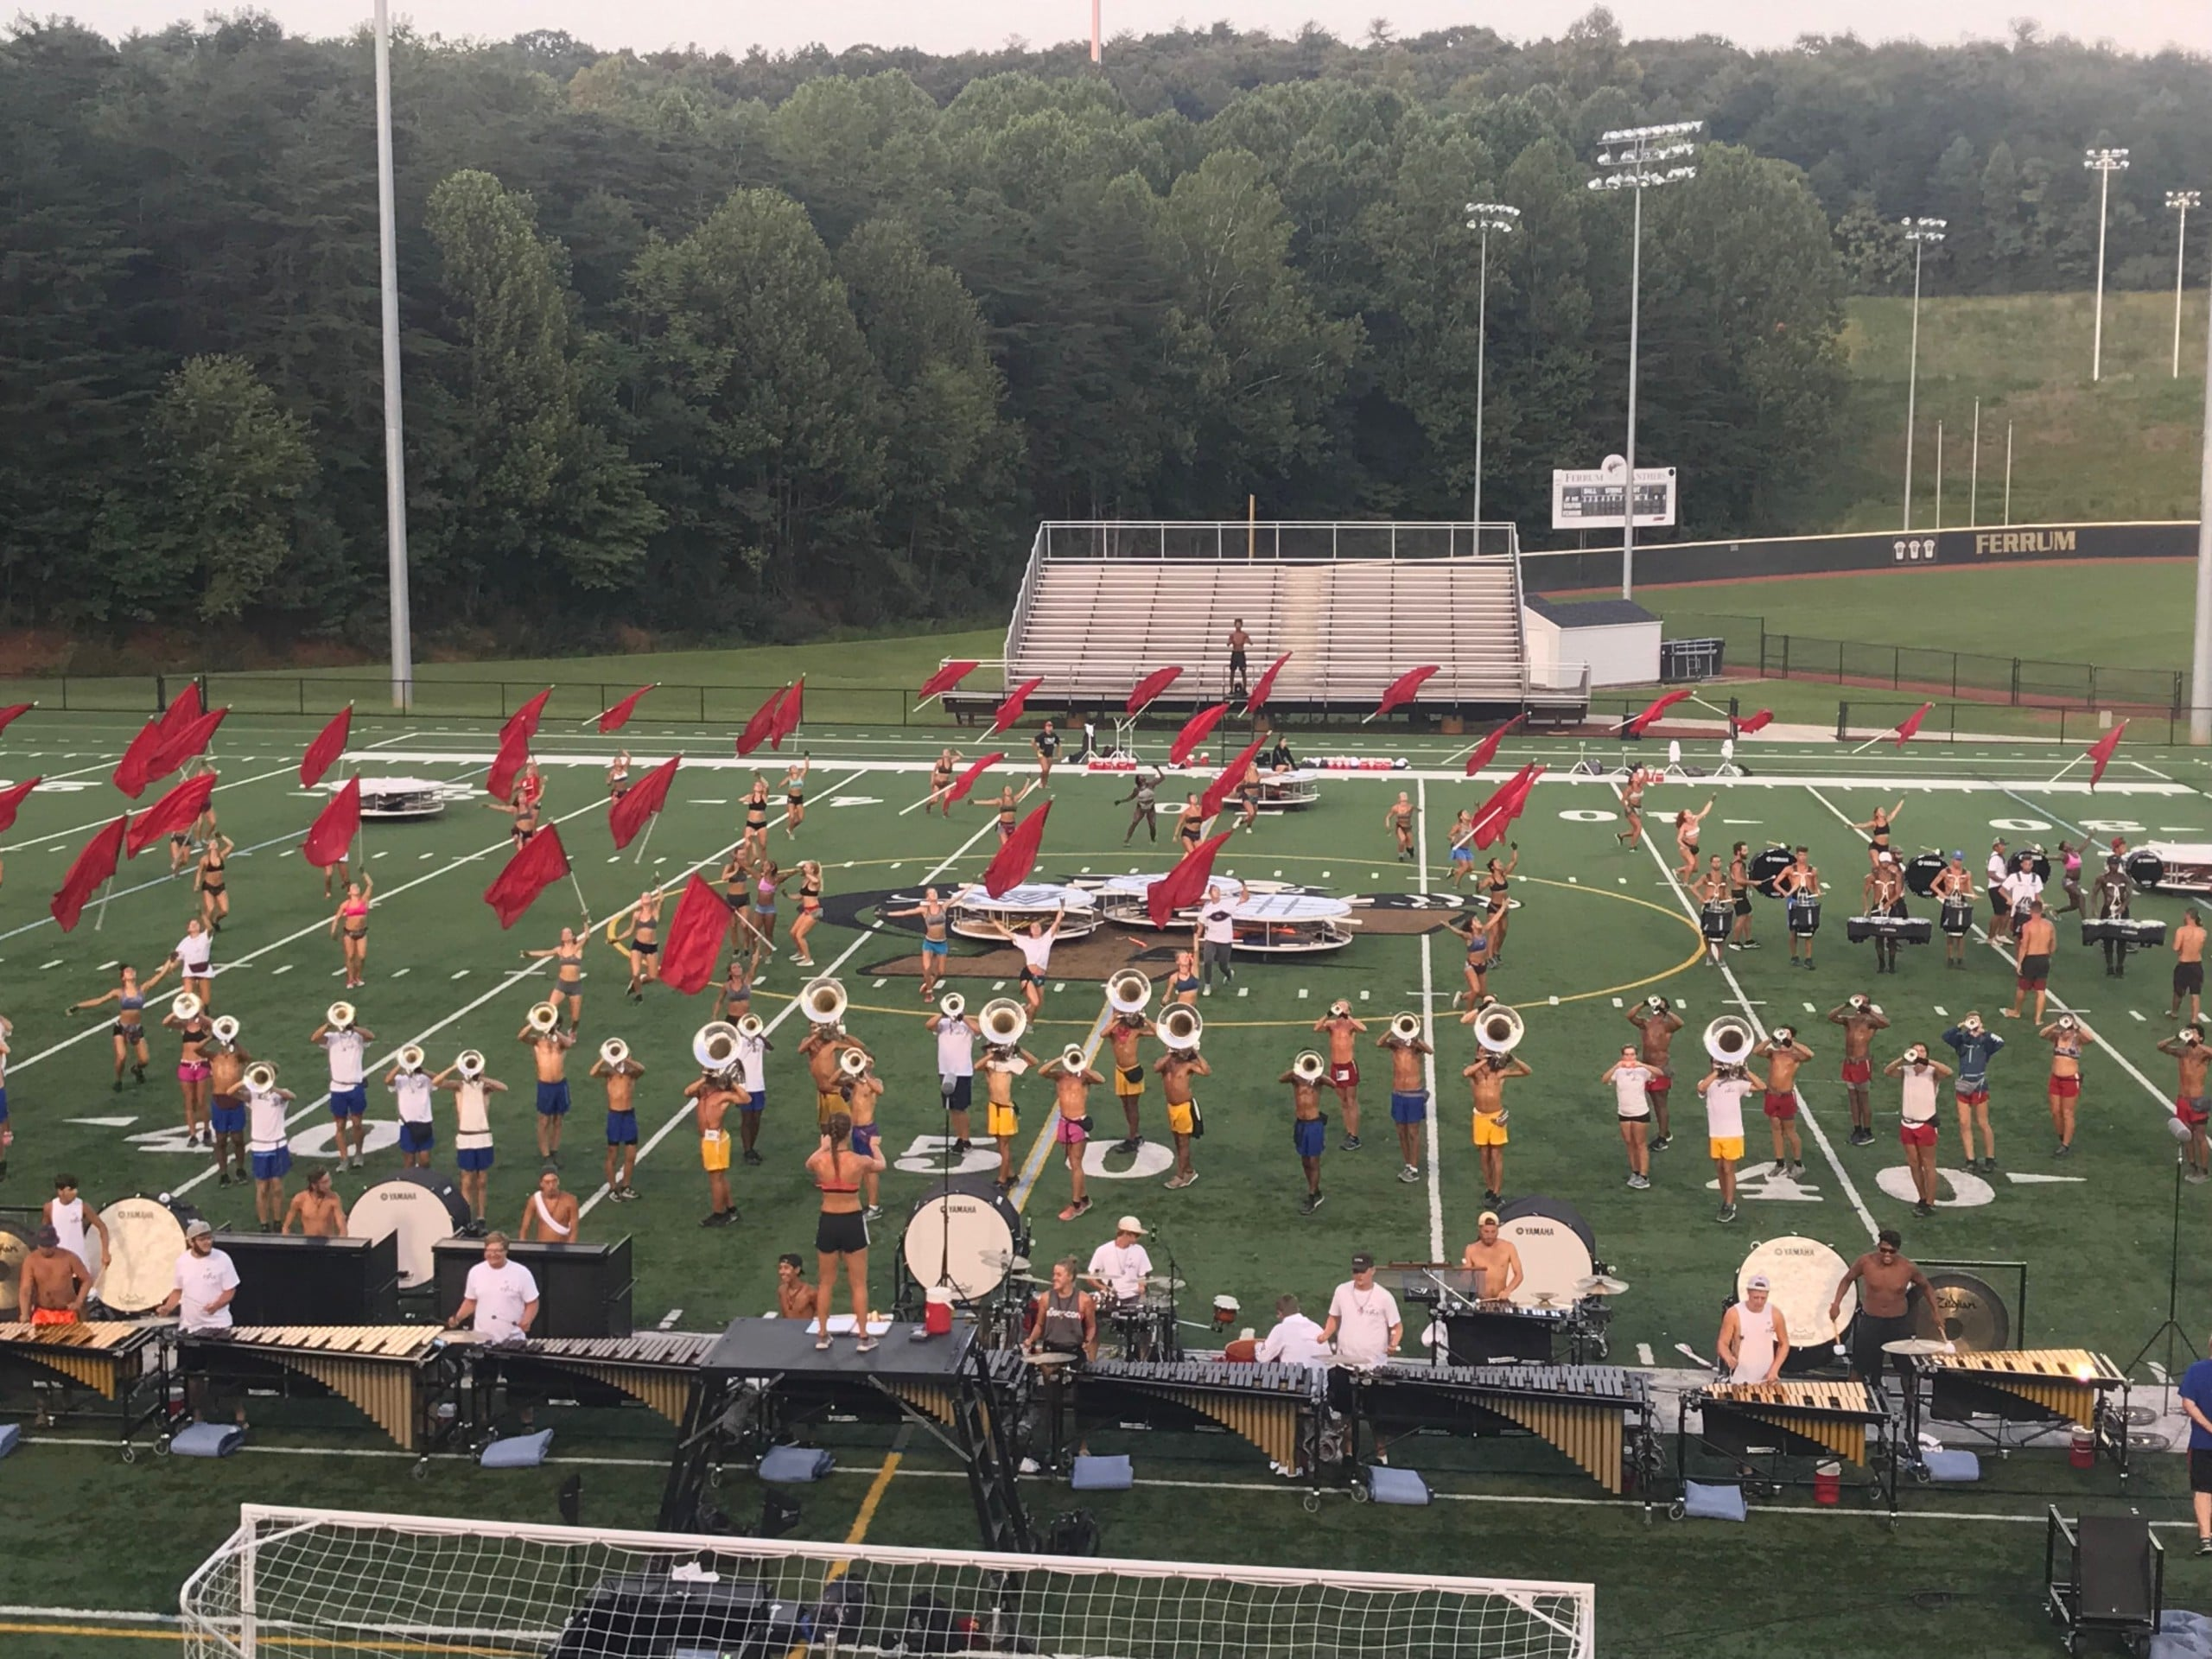 World Class Crossmen Drum and Bugle Corps rehearsed at Ferrum College's W.B. Adams stadium for Salem's July 30 Summer Music Games.